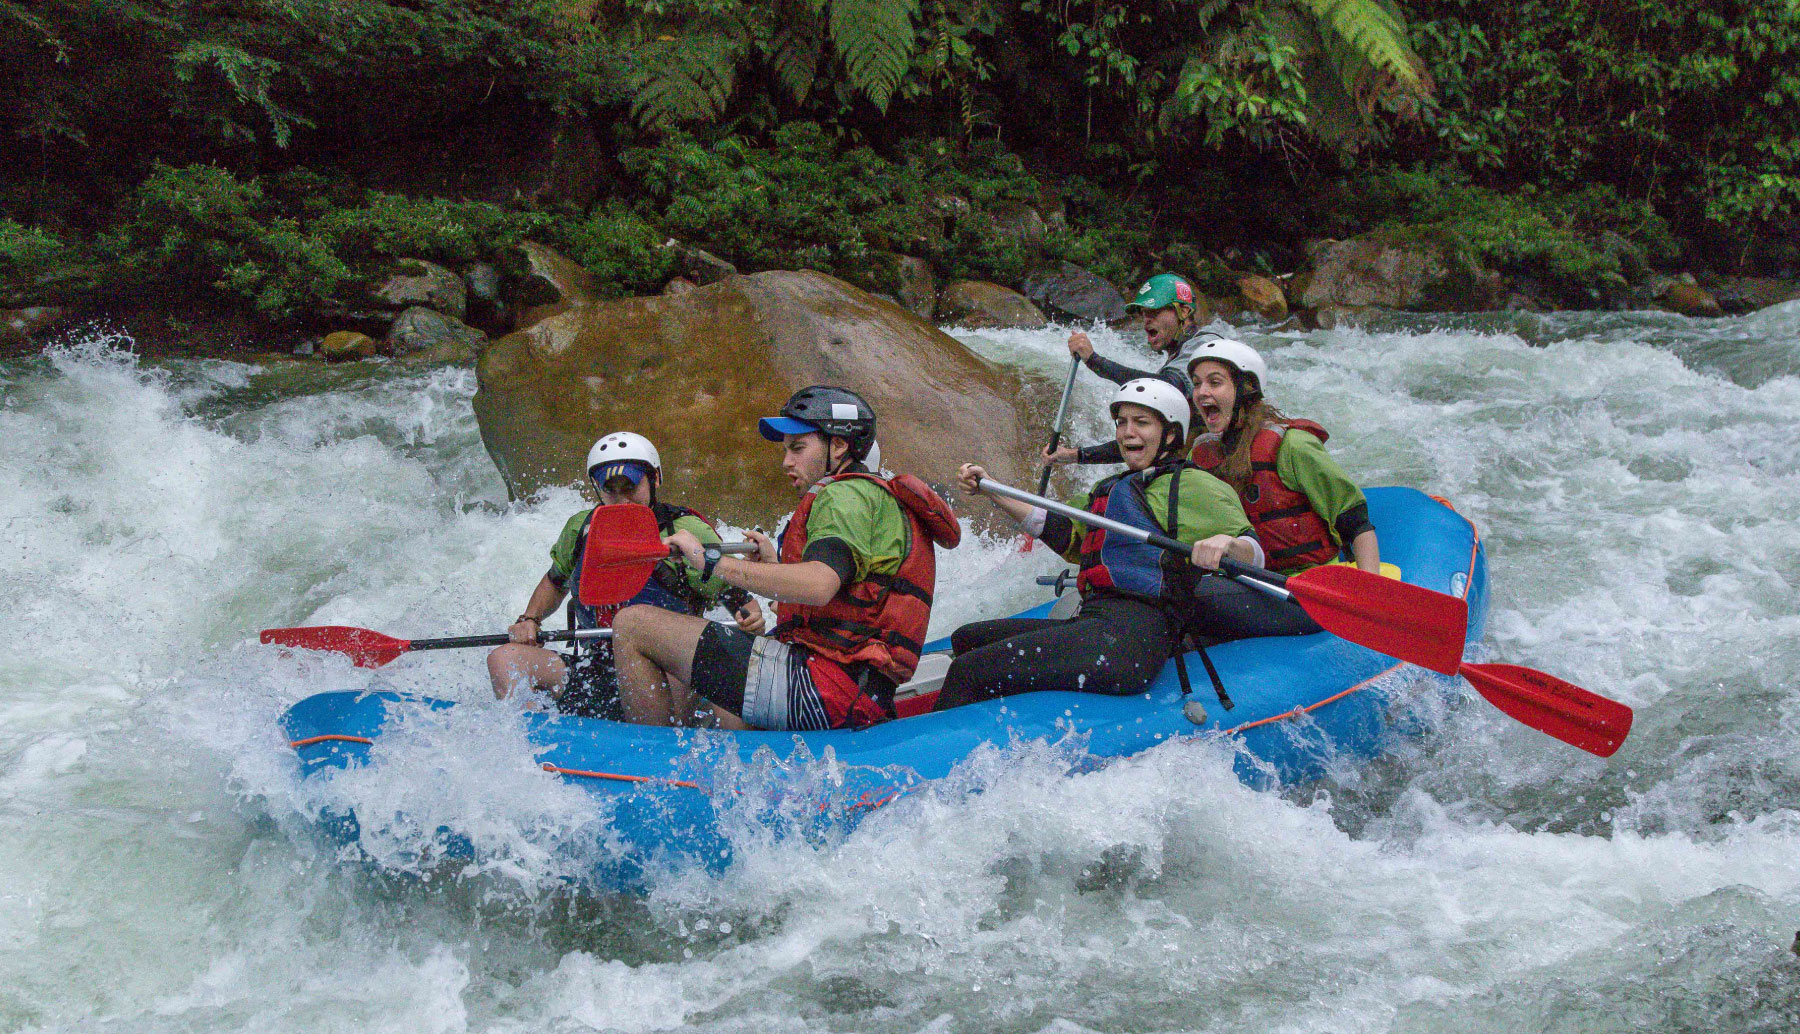 Jondachi & Hollin river Rafting Trip. Class IV rapid before the joint of the Hollin river